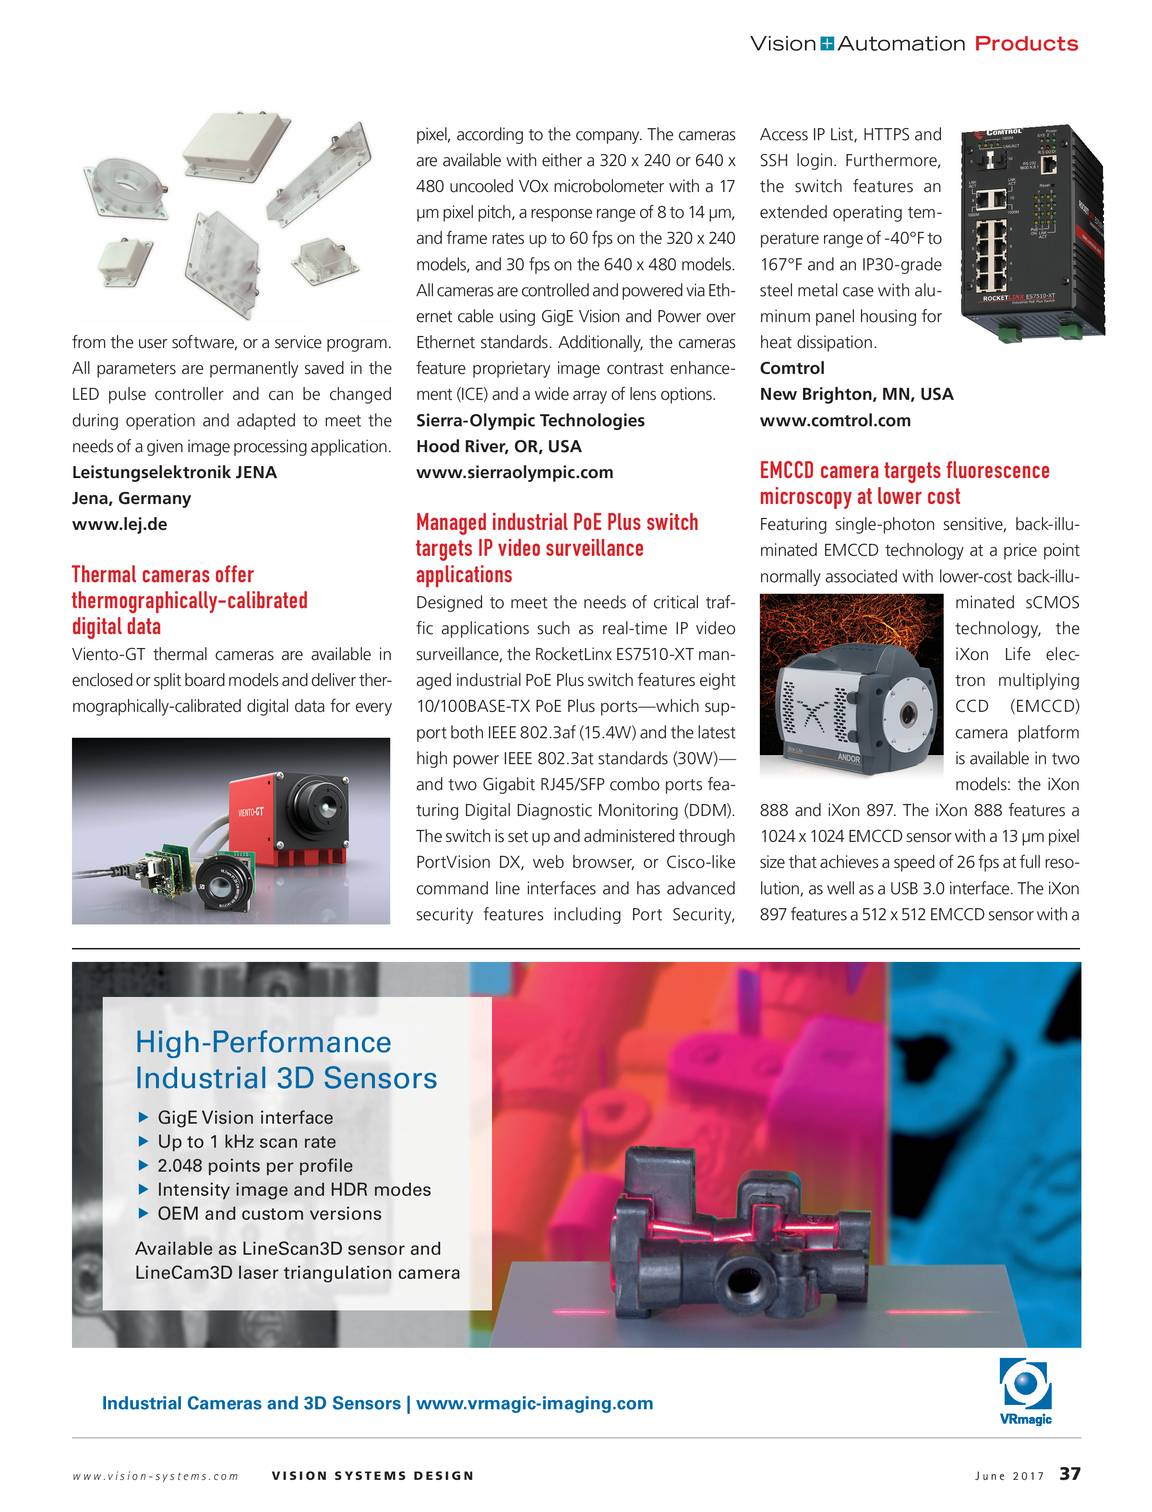 Vision Systems - June 2017 - page 37